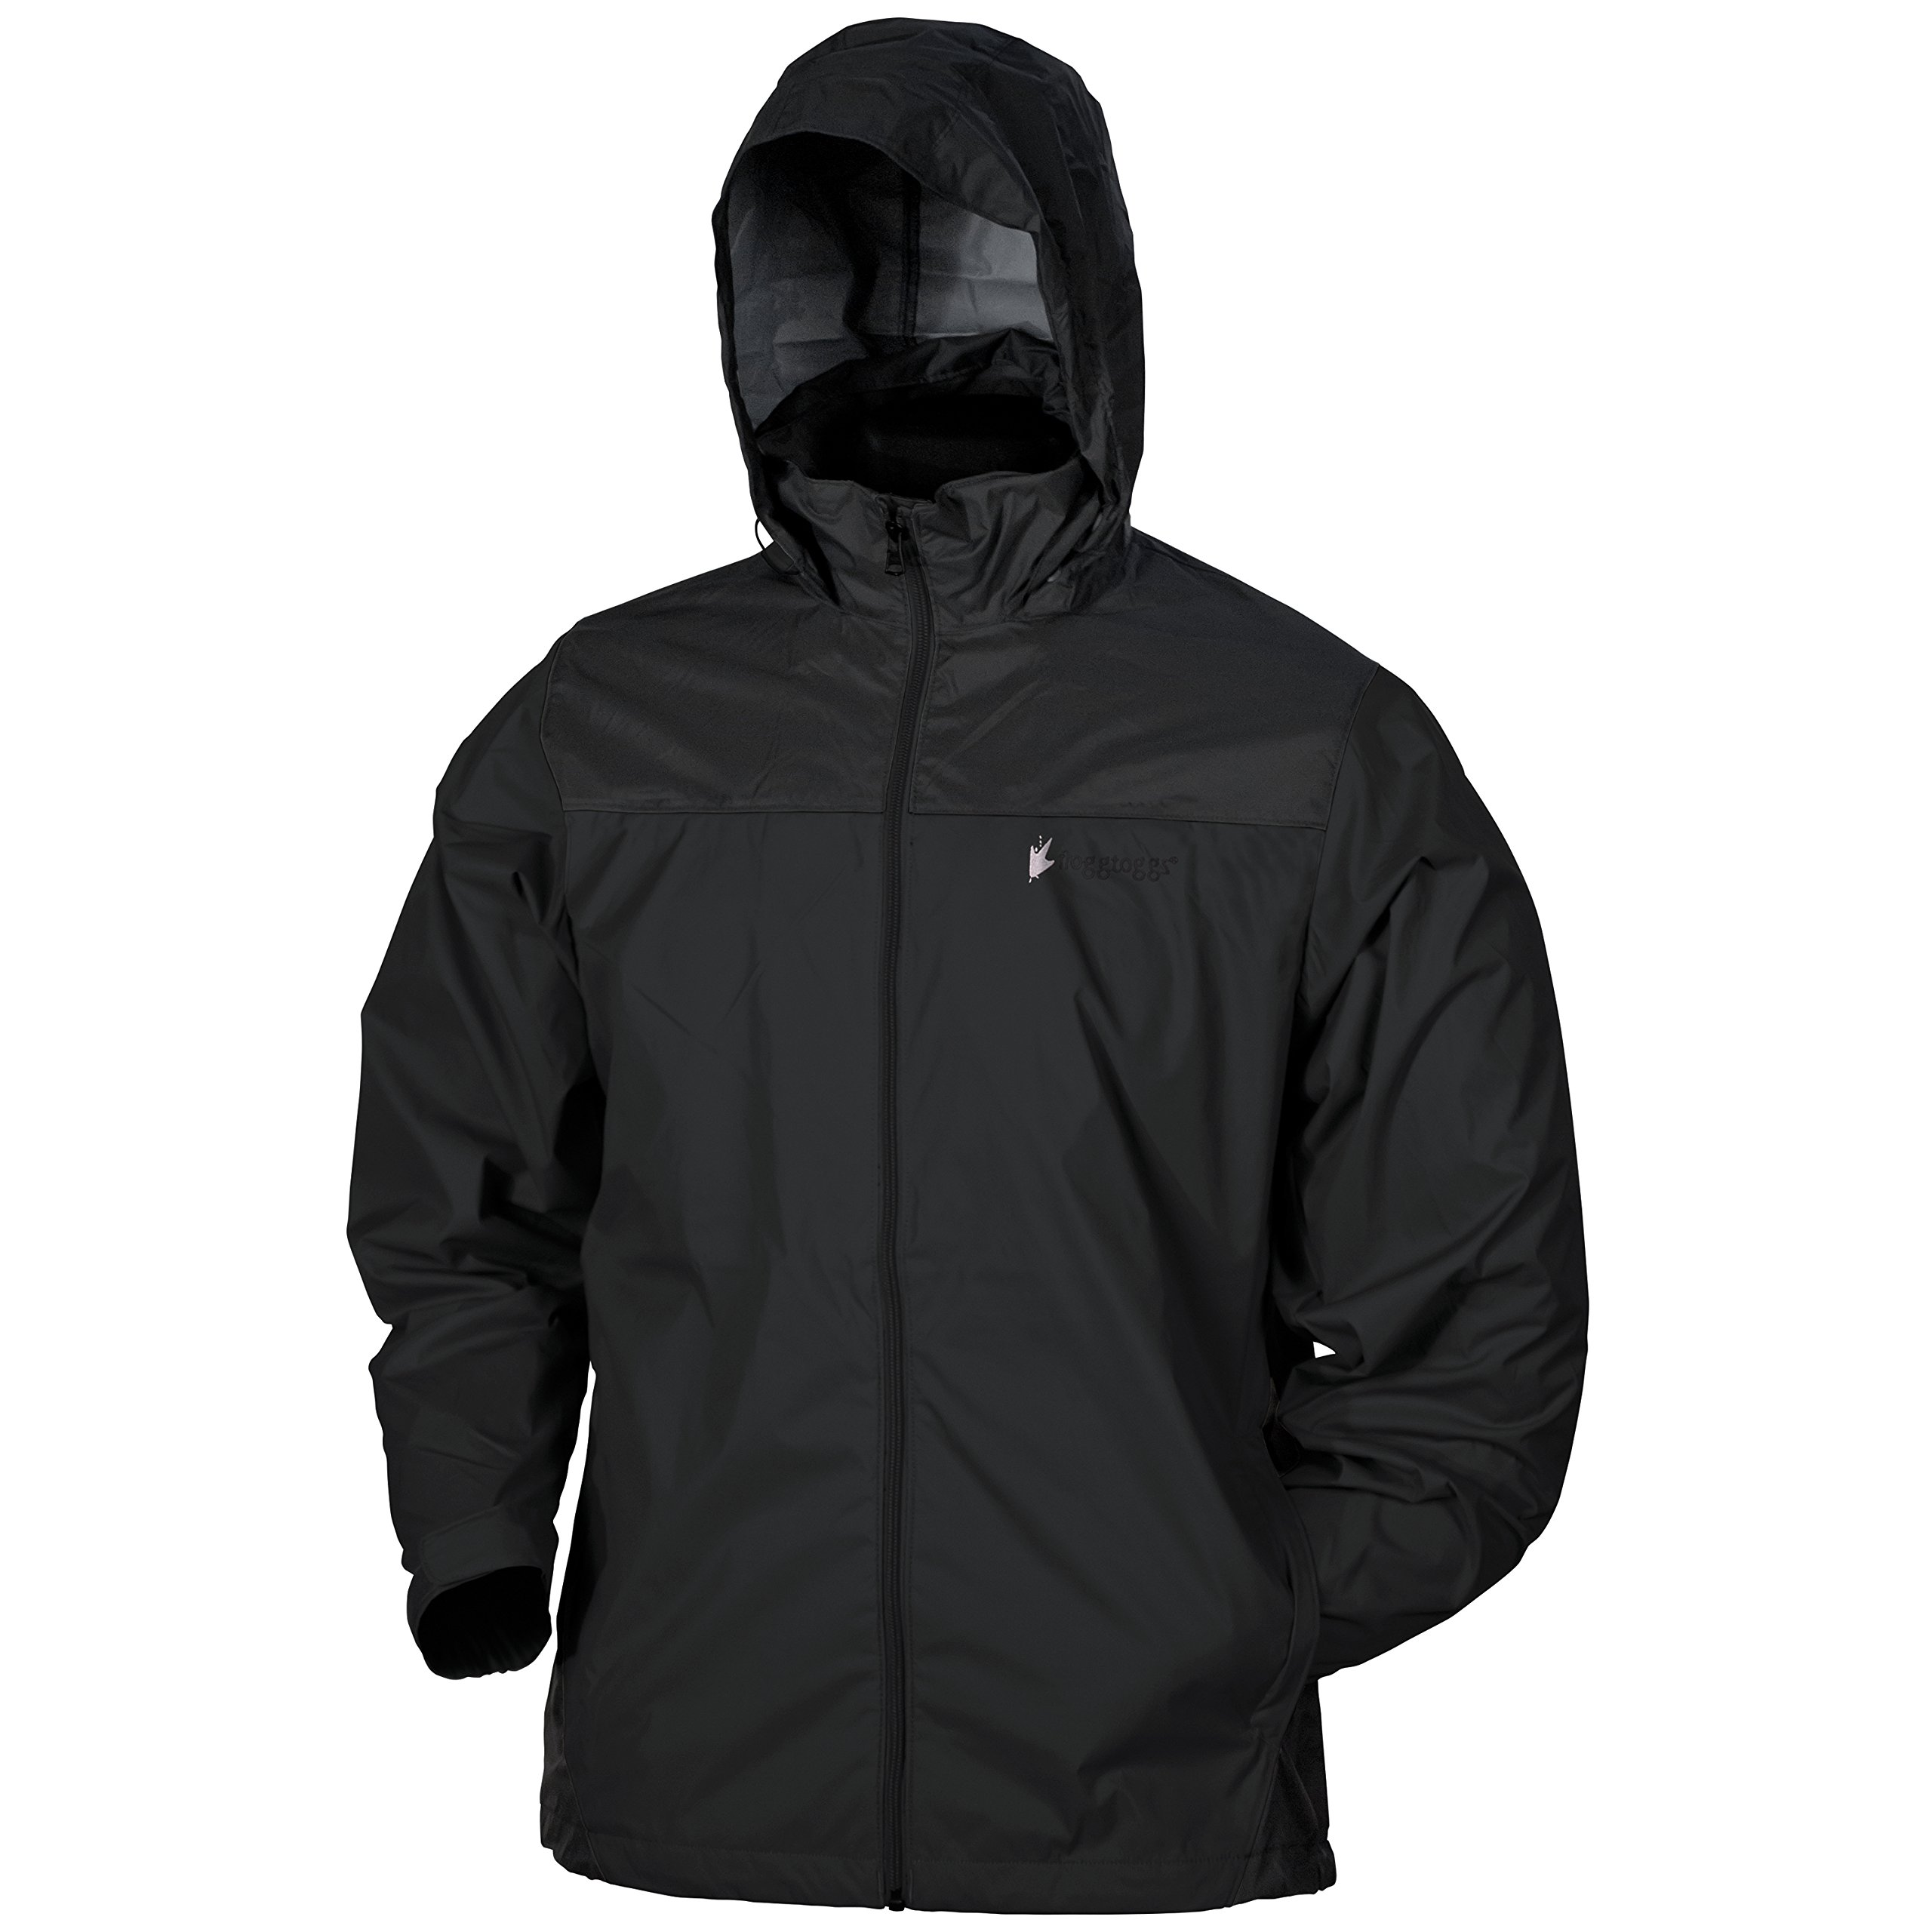 Frogg Toggs River Toadz Pack Jacket, Black, Size XX-Large